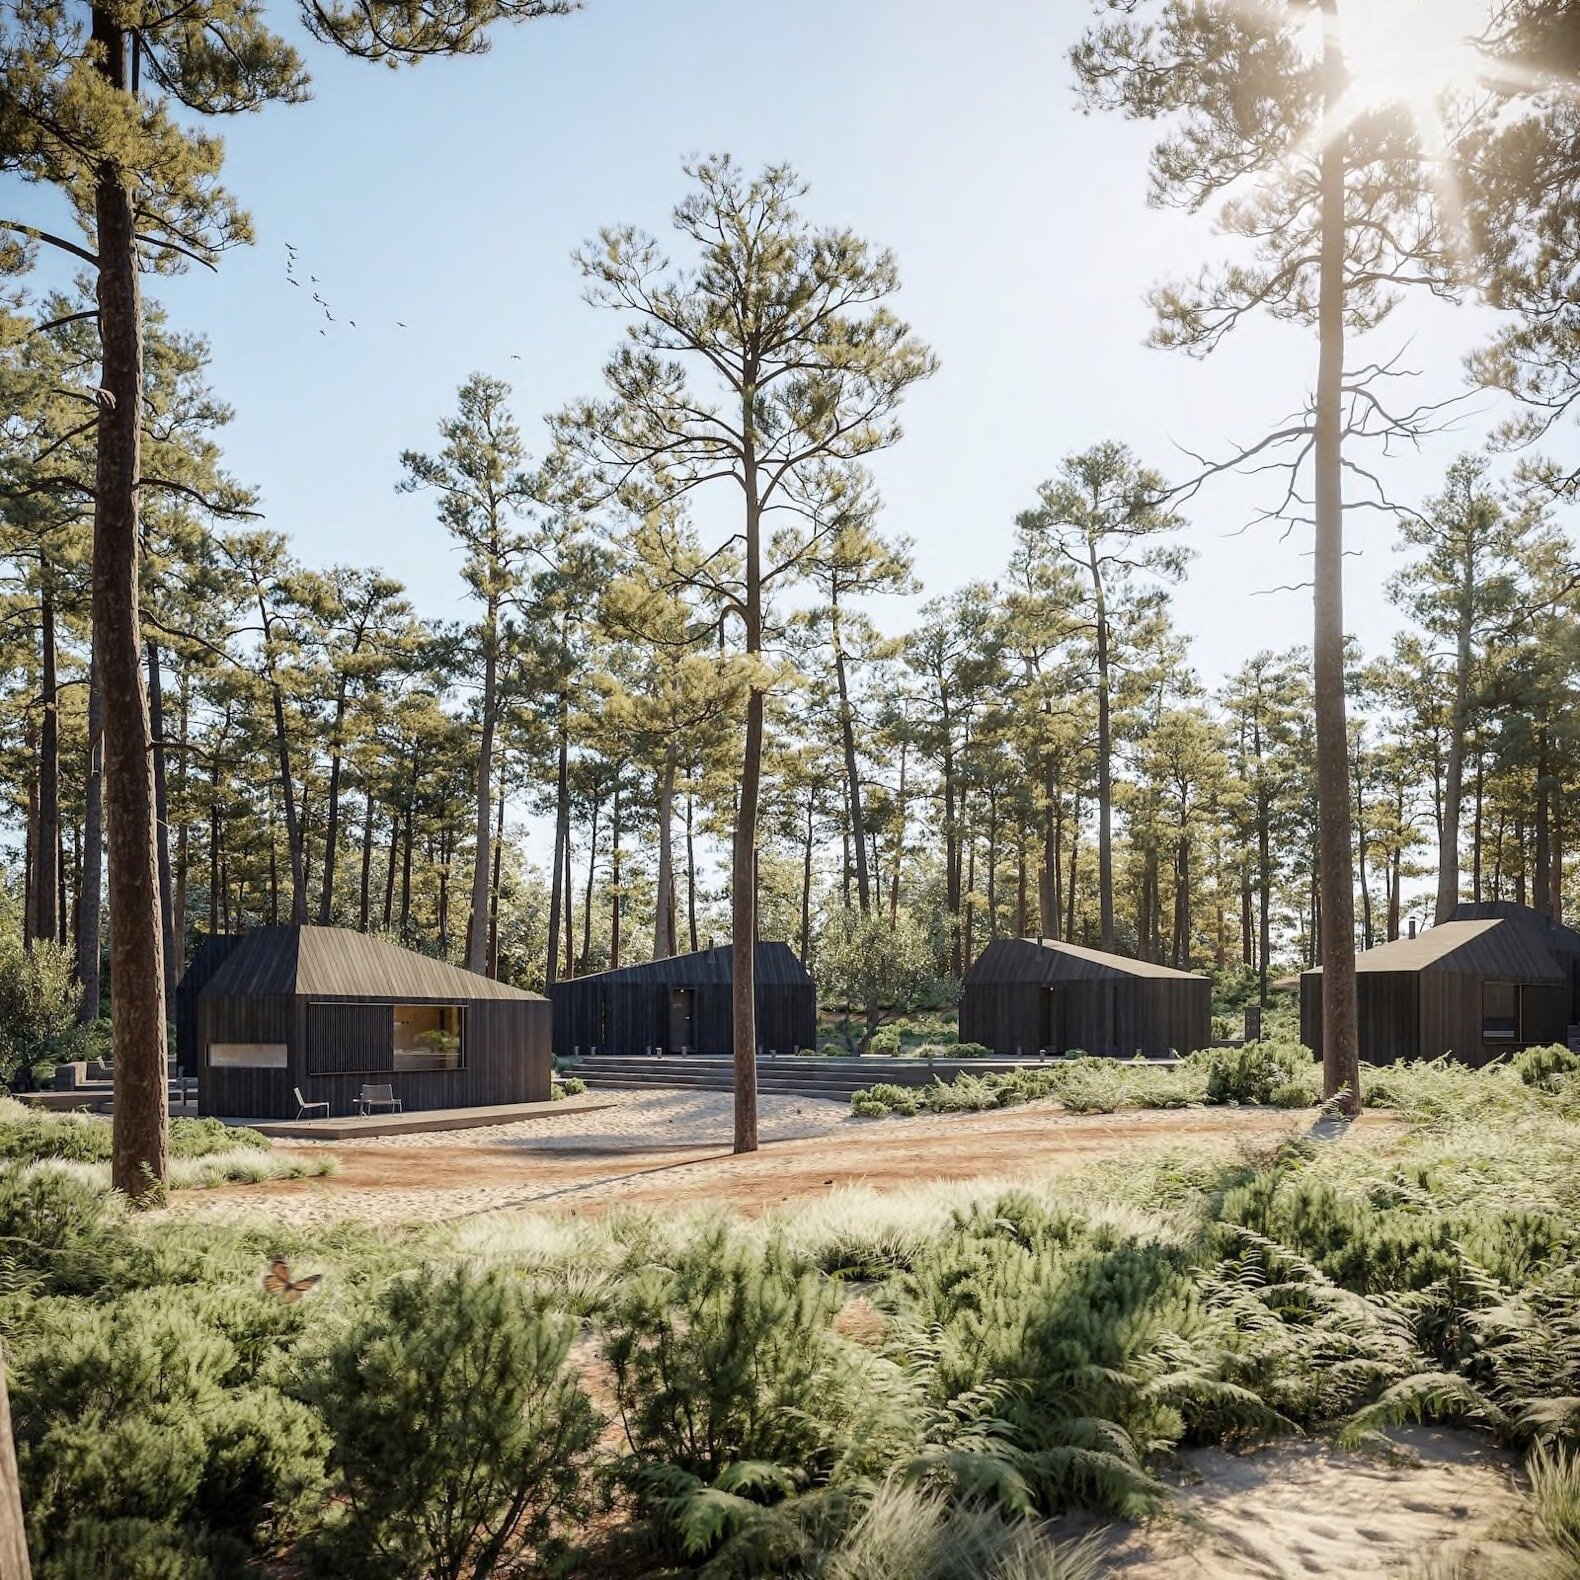 Exterior, Cabin Building Type, Prefab Building Type, and Wood Siding Material Multiple Hytte cabins can be clustered together to create a village layout.   Dwell's Favorite Photos from These New Prefab Cabins Provide Hoteliers With Sleek, Scalable Accommodations